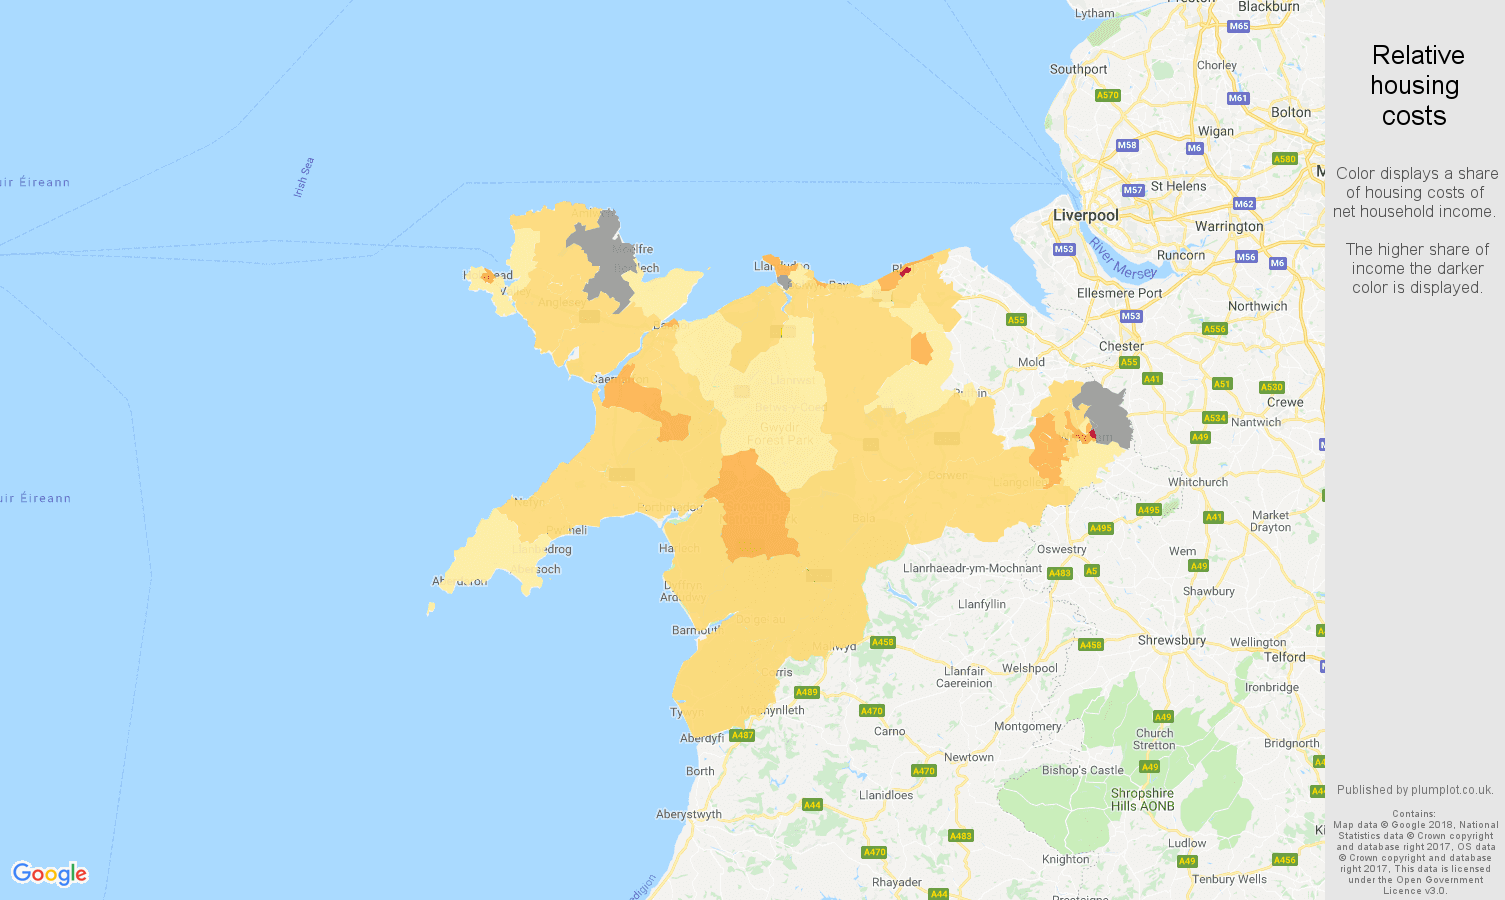 Llandudno relative housing costs map